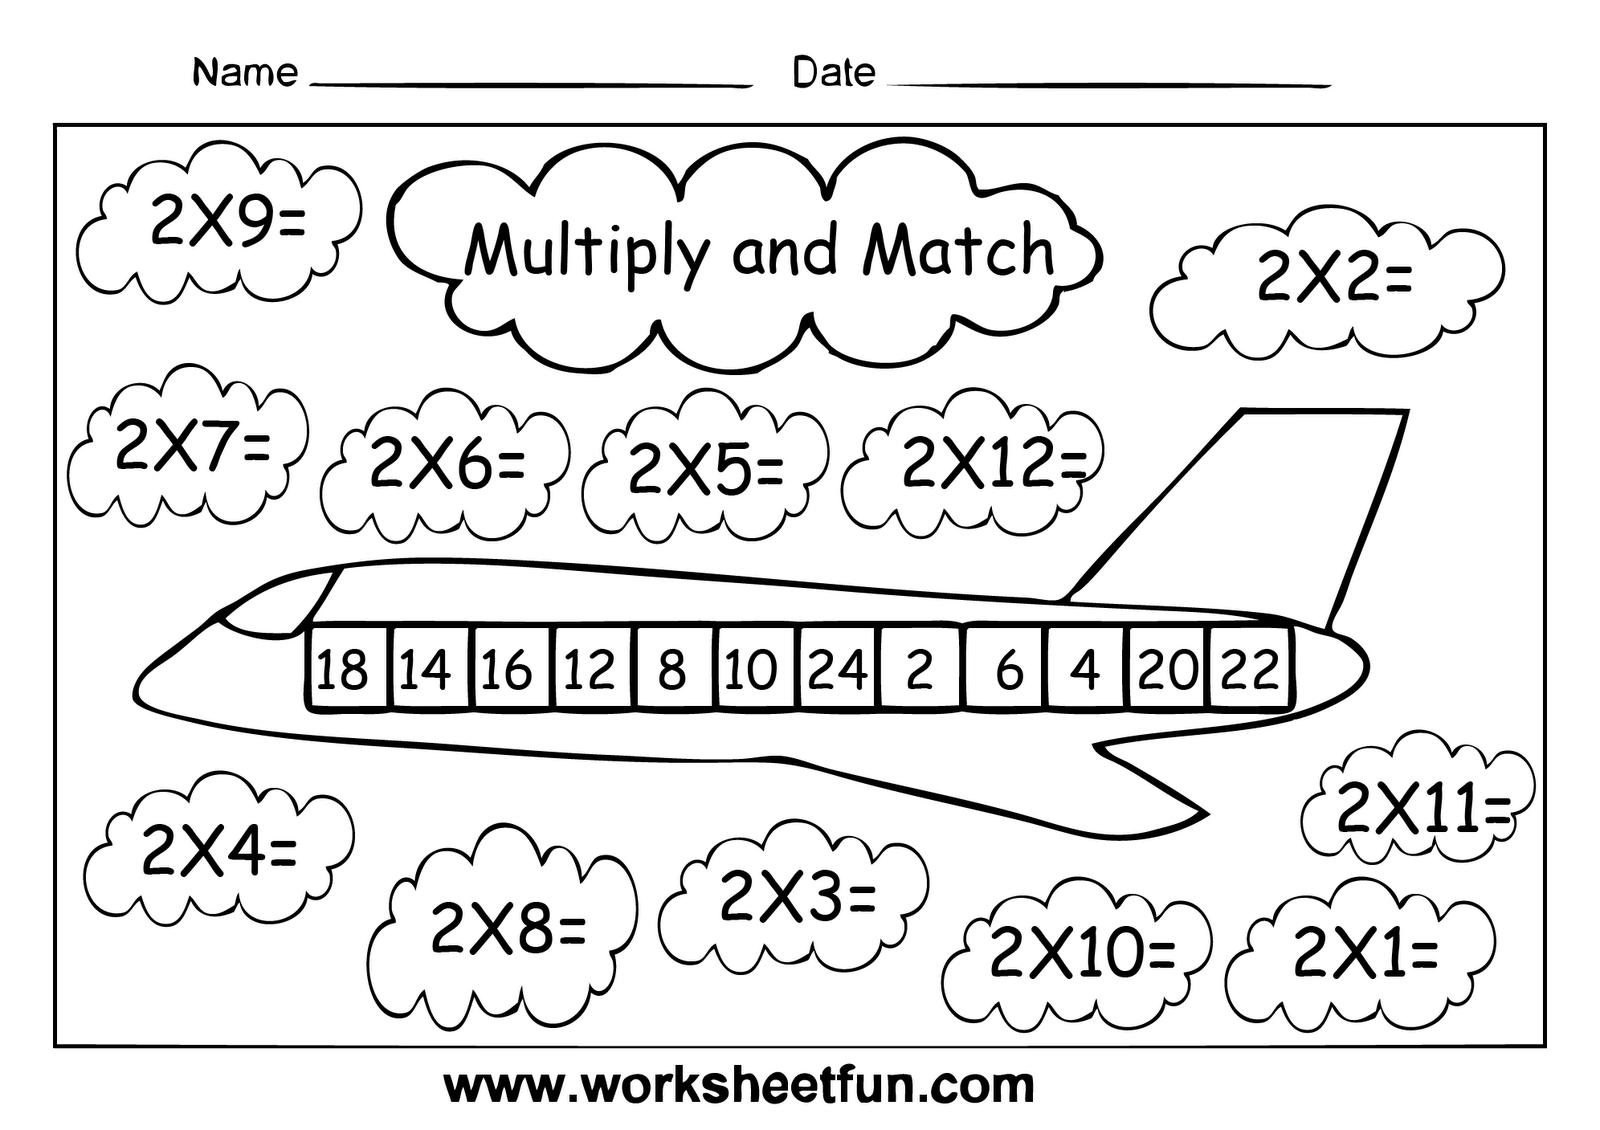 Free Printable Multiplication Worksheets Color By Number